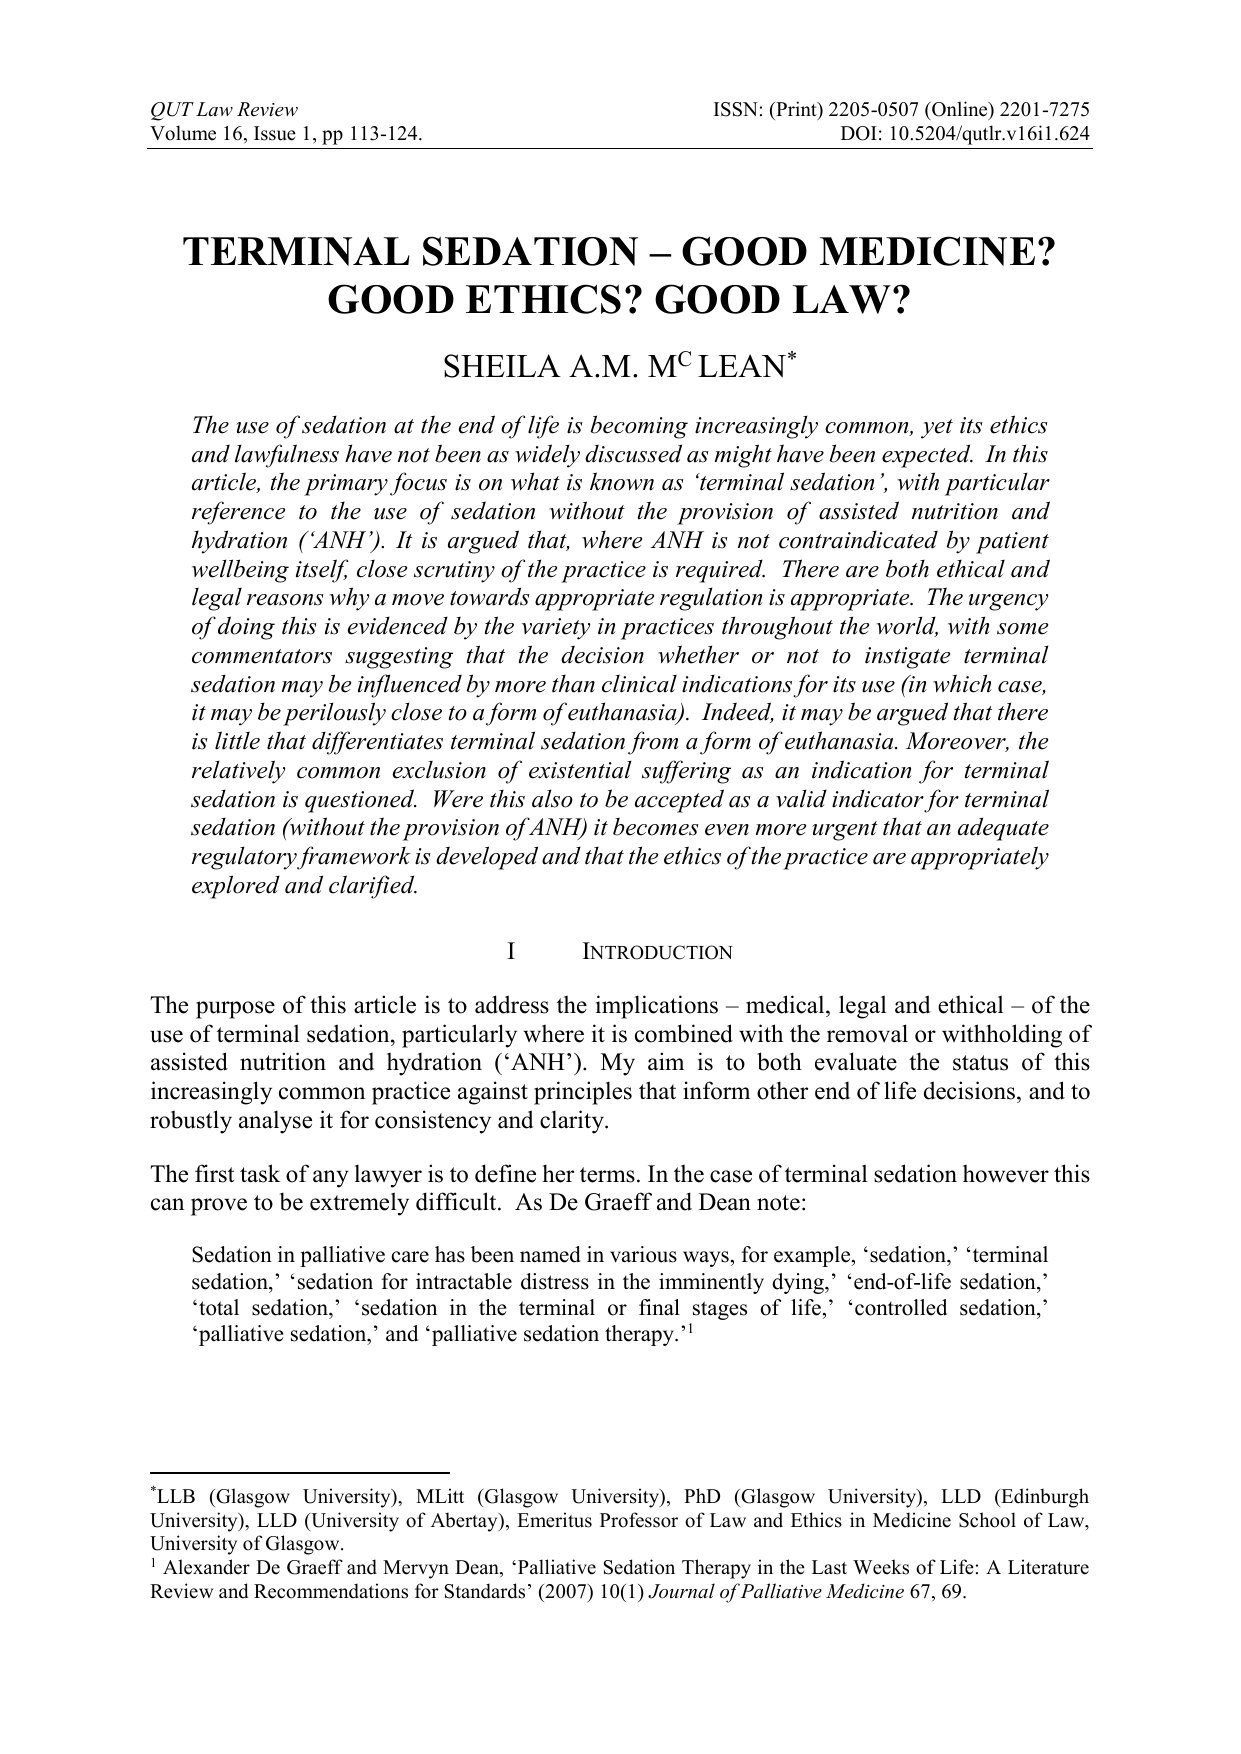 medical ethics literature review